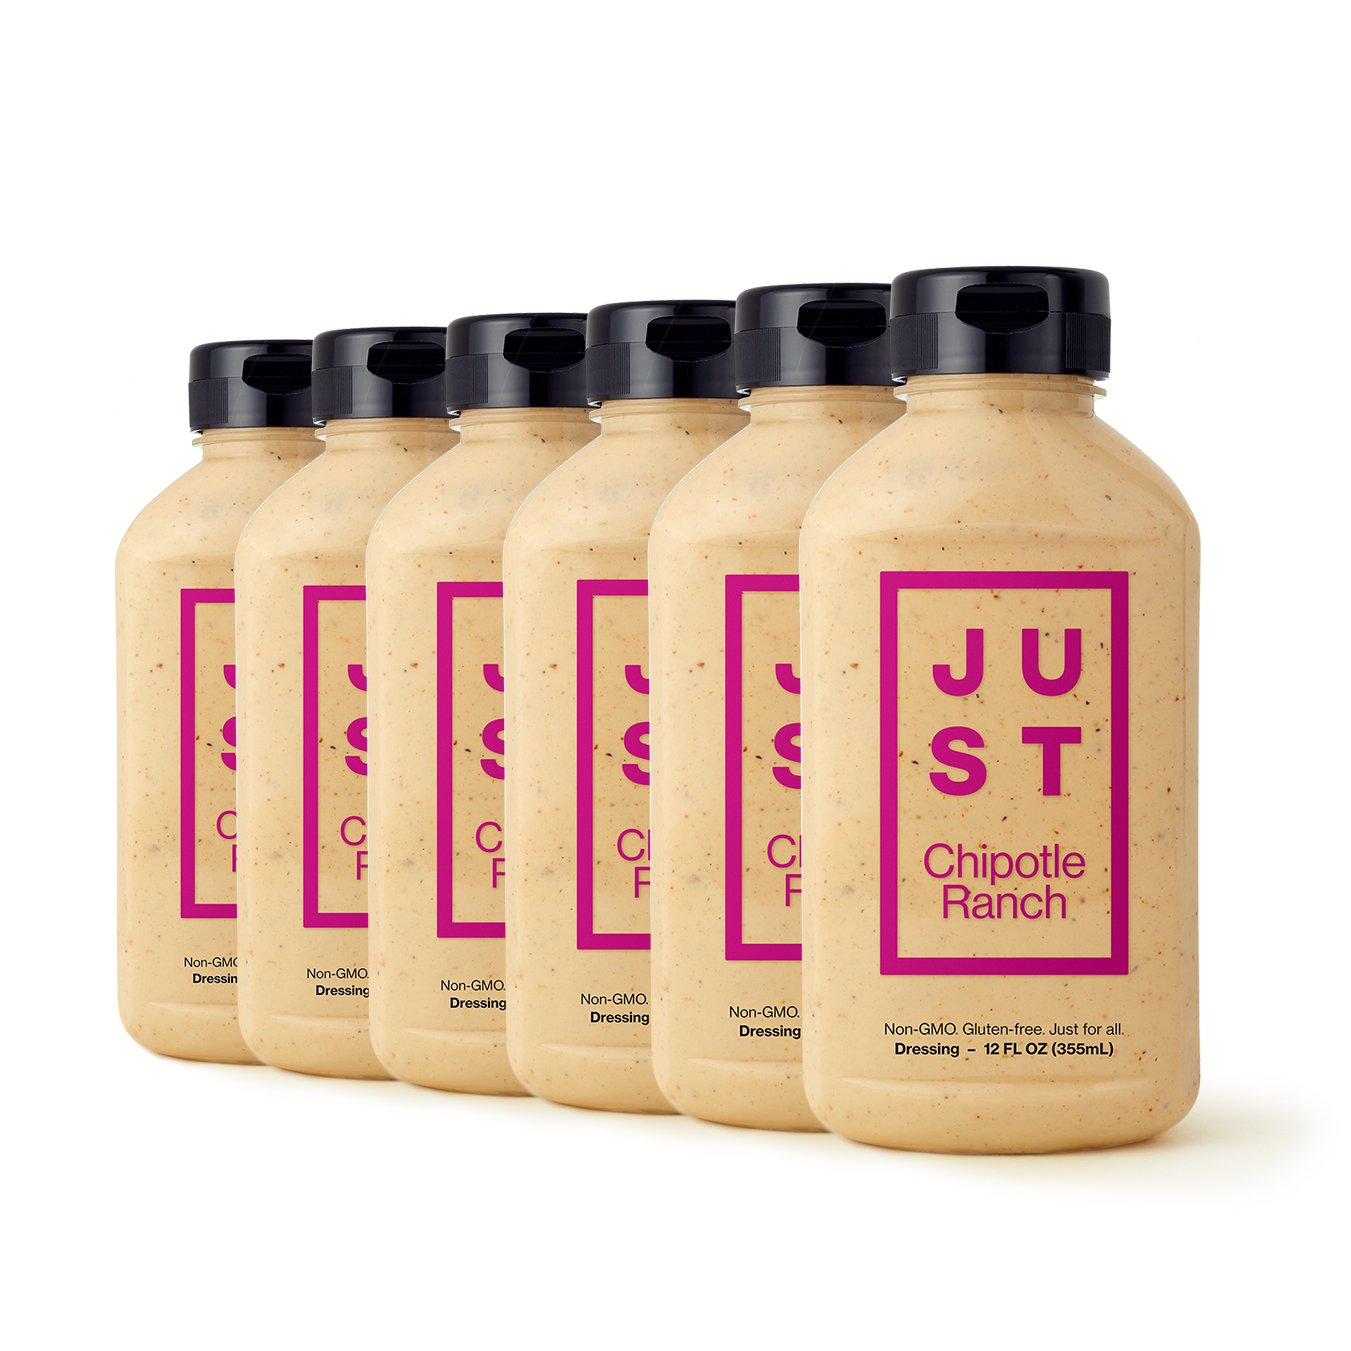 Just Chipotle Ranch, Non-GMO, 12oz (Pack of 6)